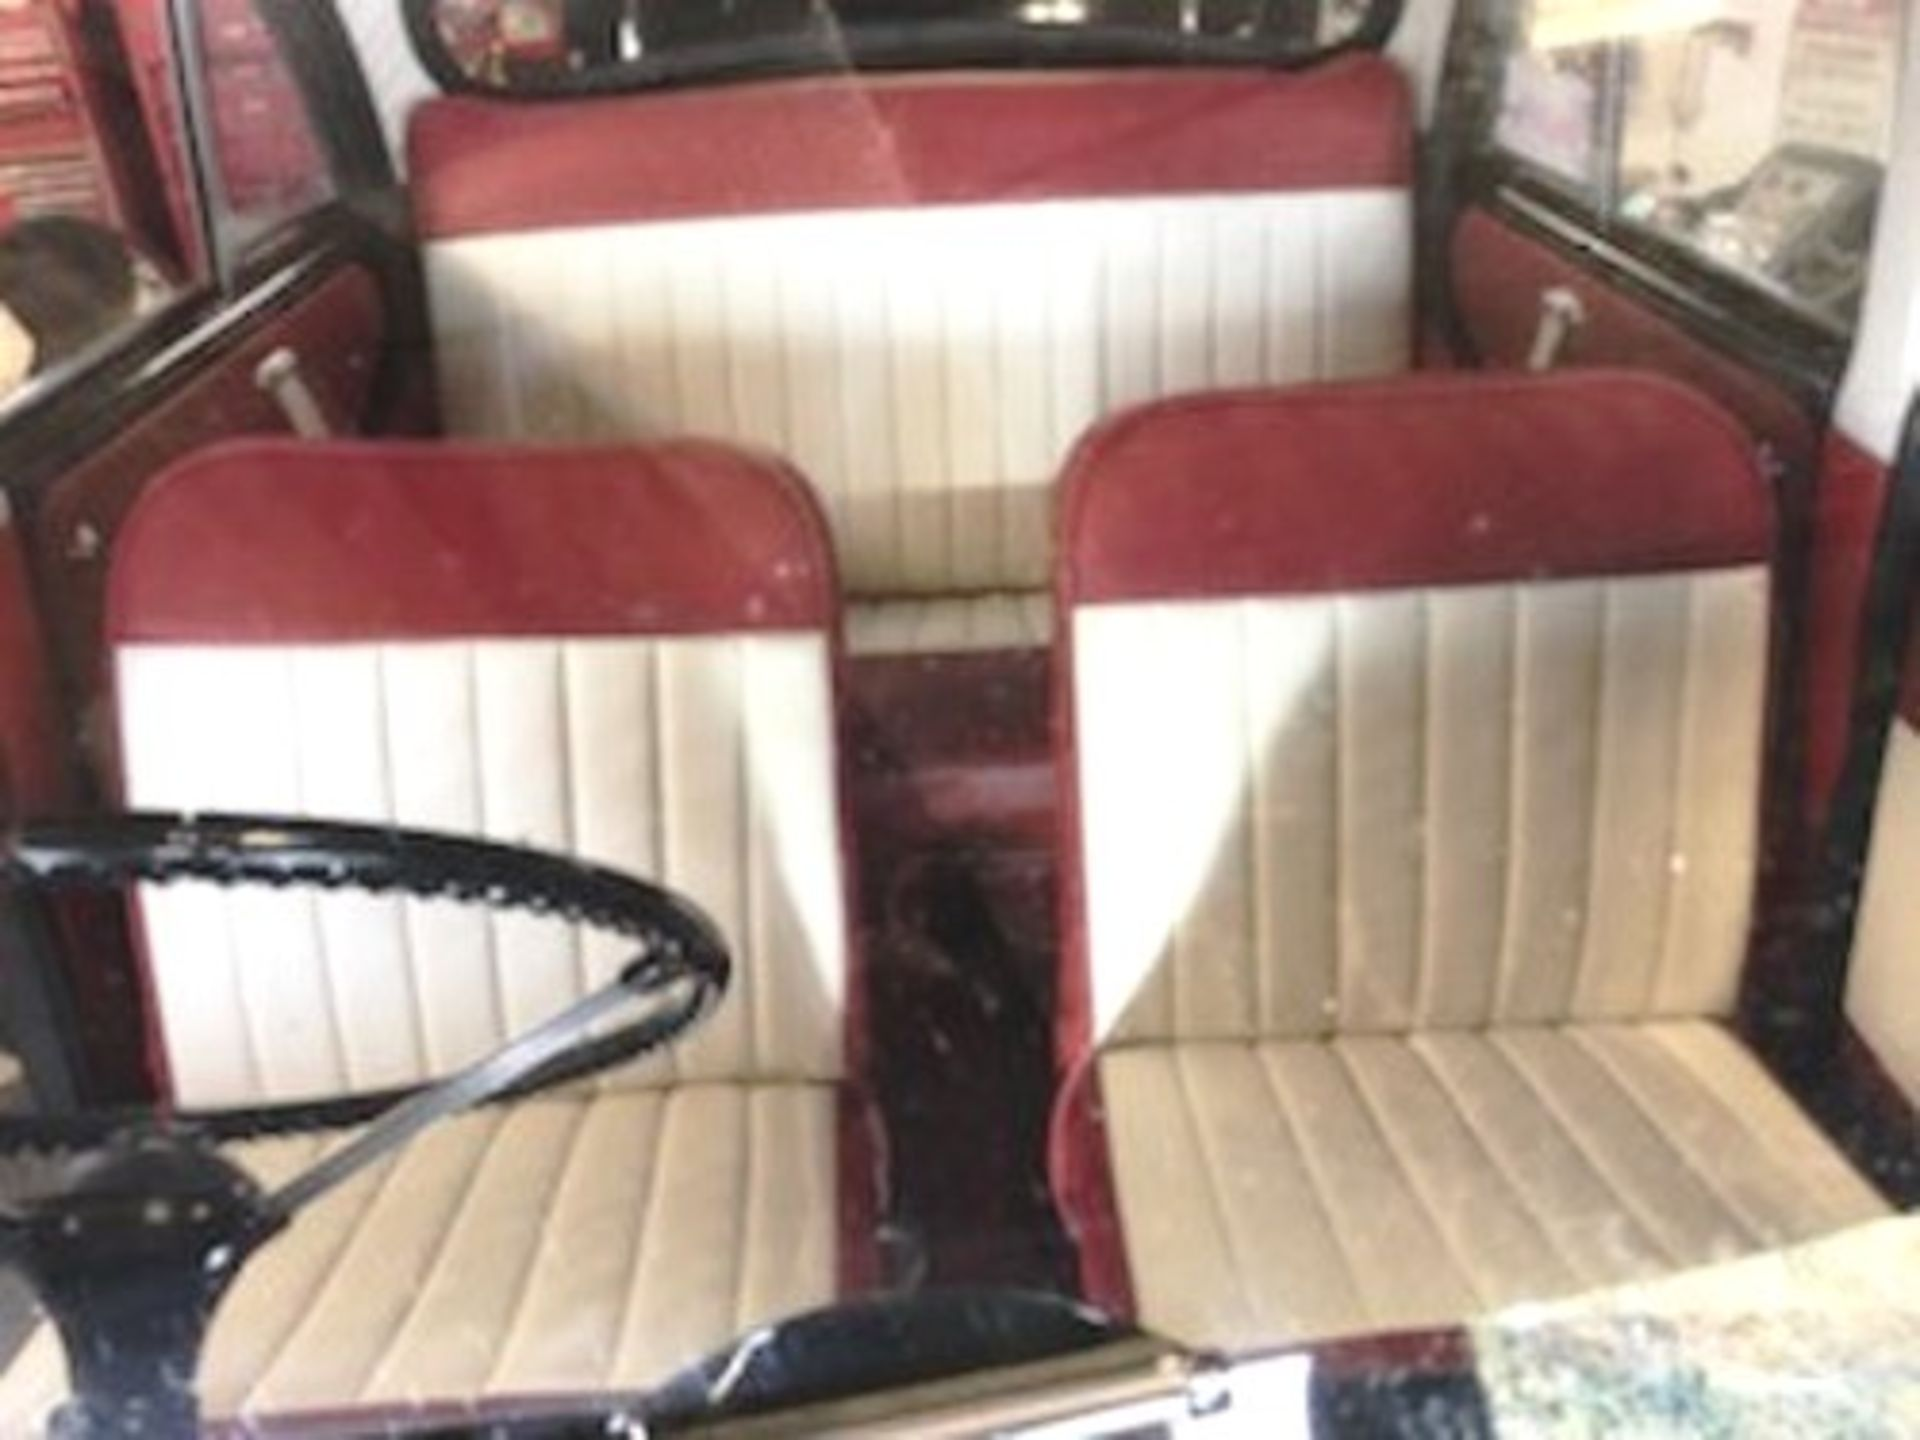 1964 Morris Minor 1000 in original black. The car has been restored with new flooring and vinyl - Image 12 of 16